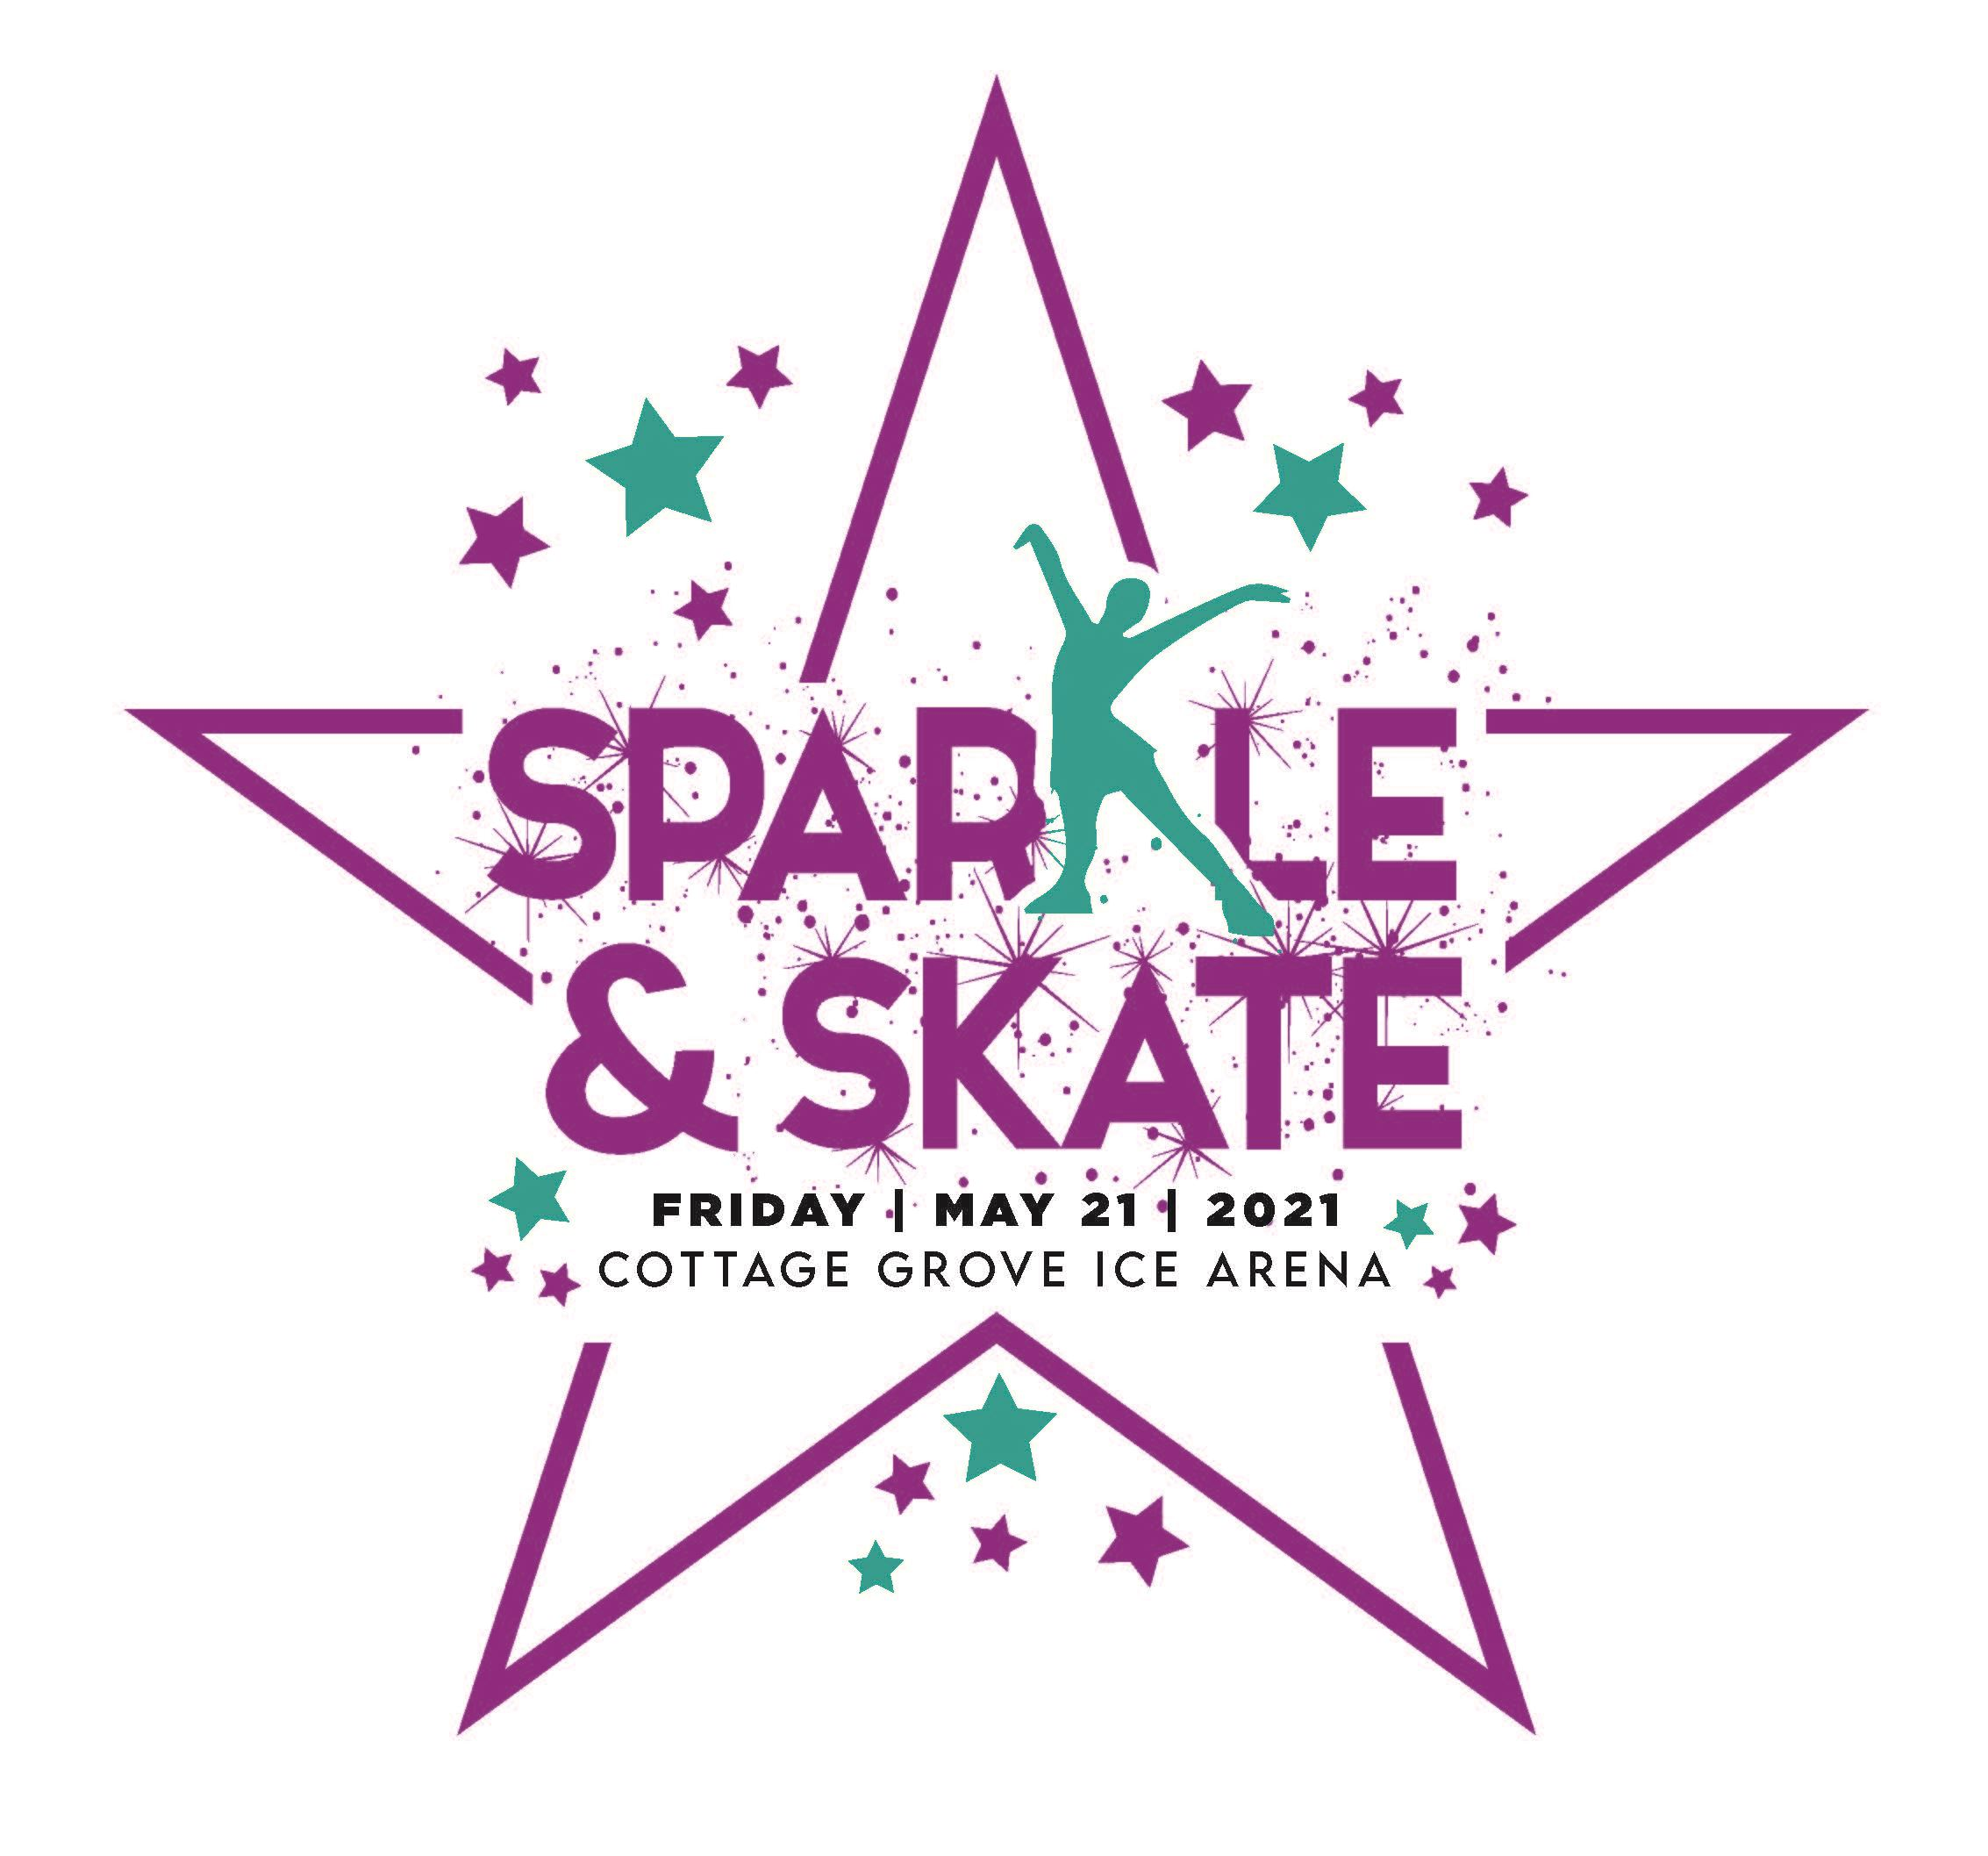 Sparkle and skate